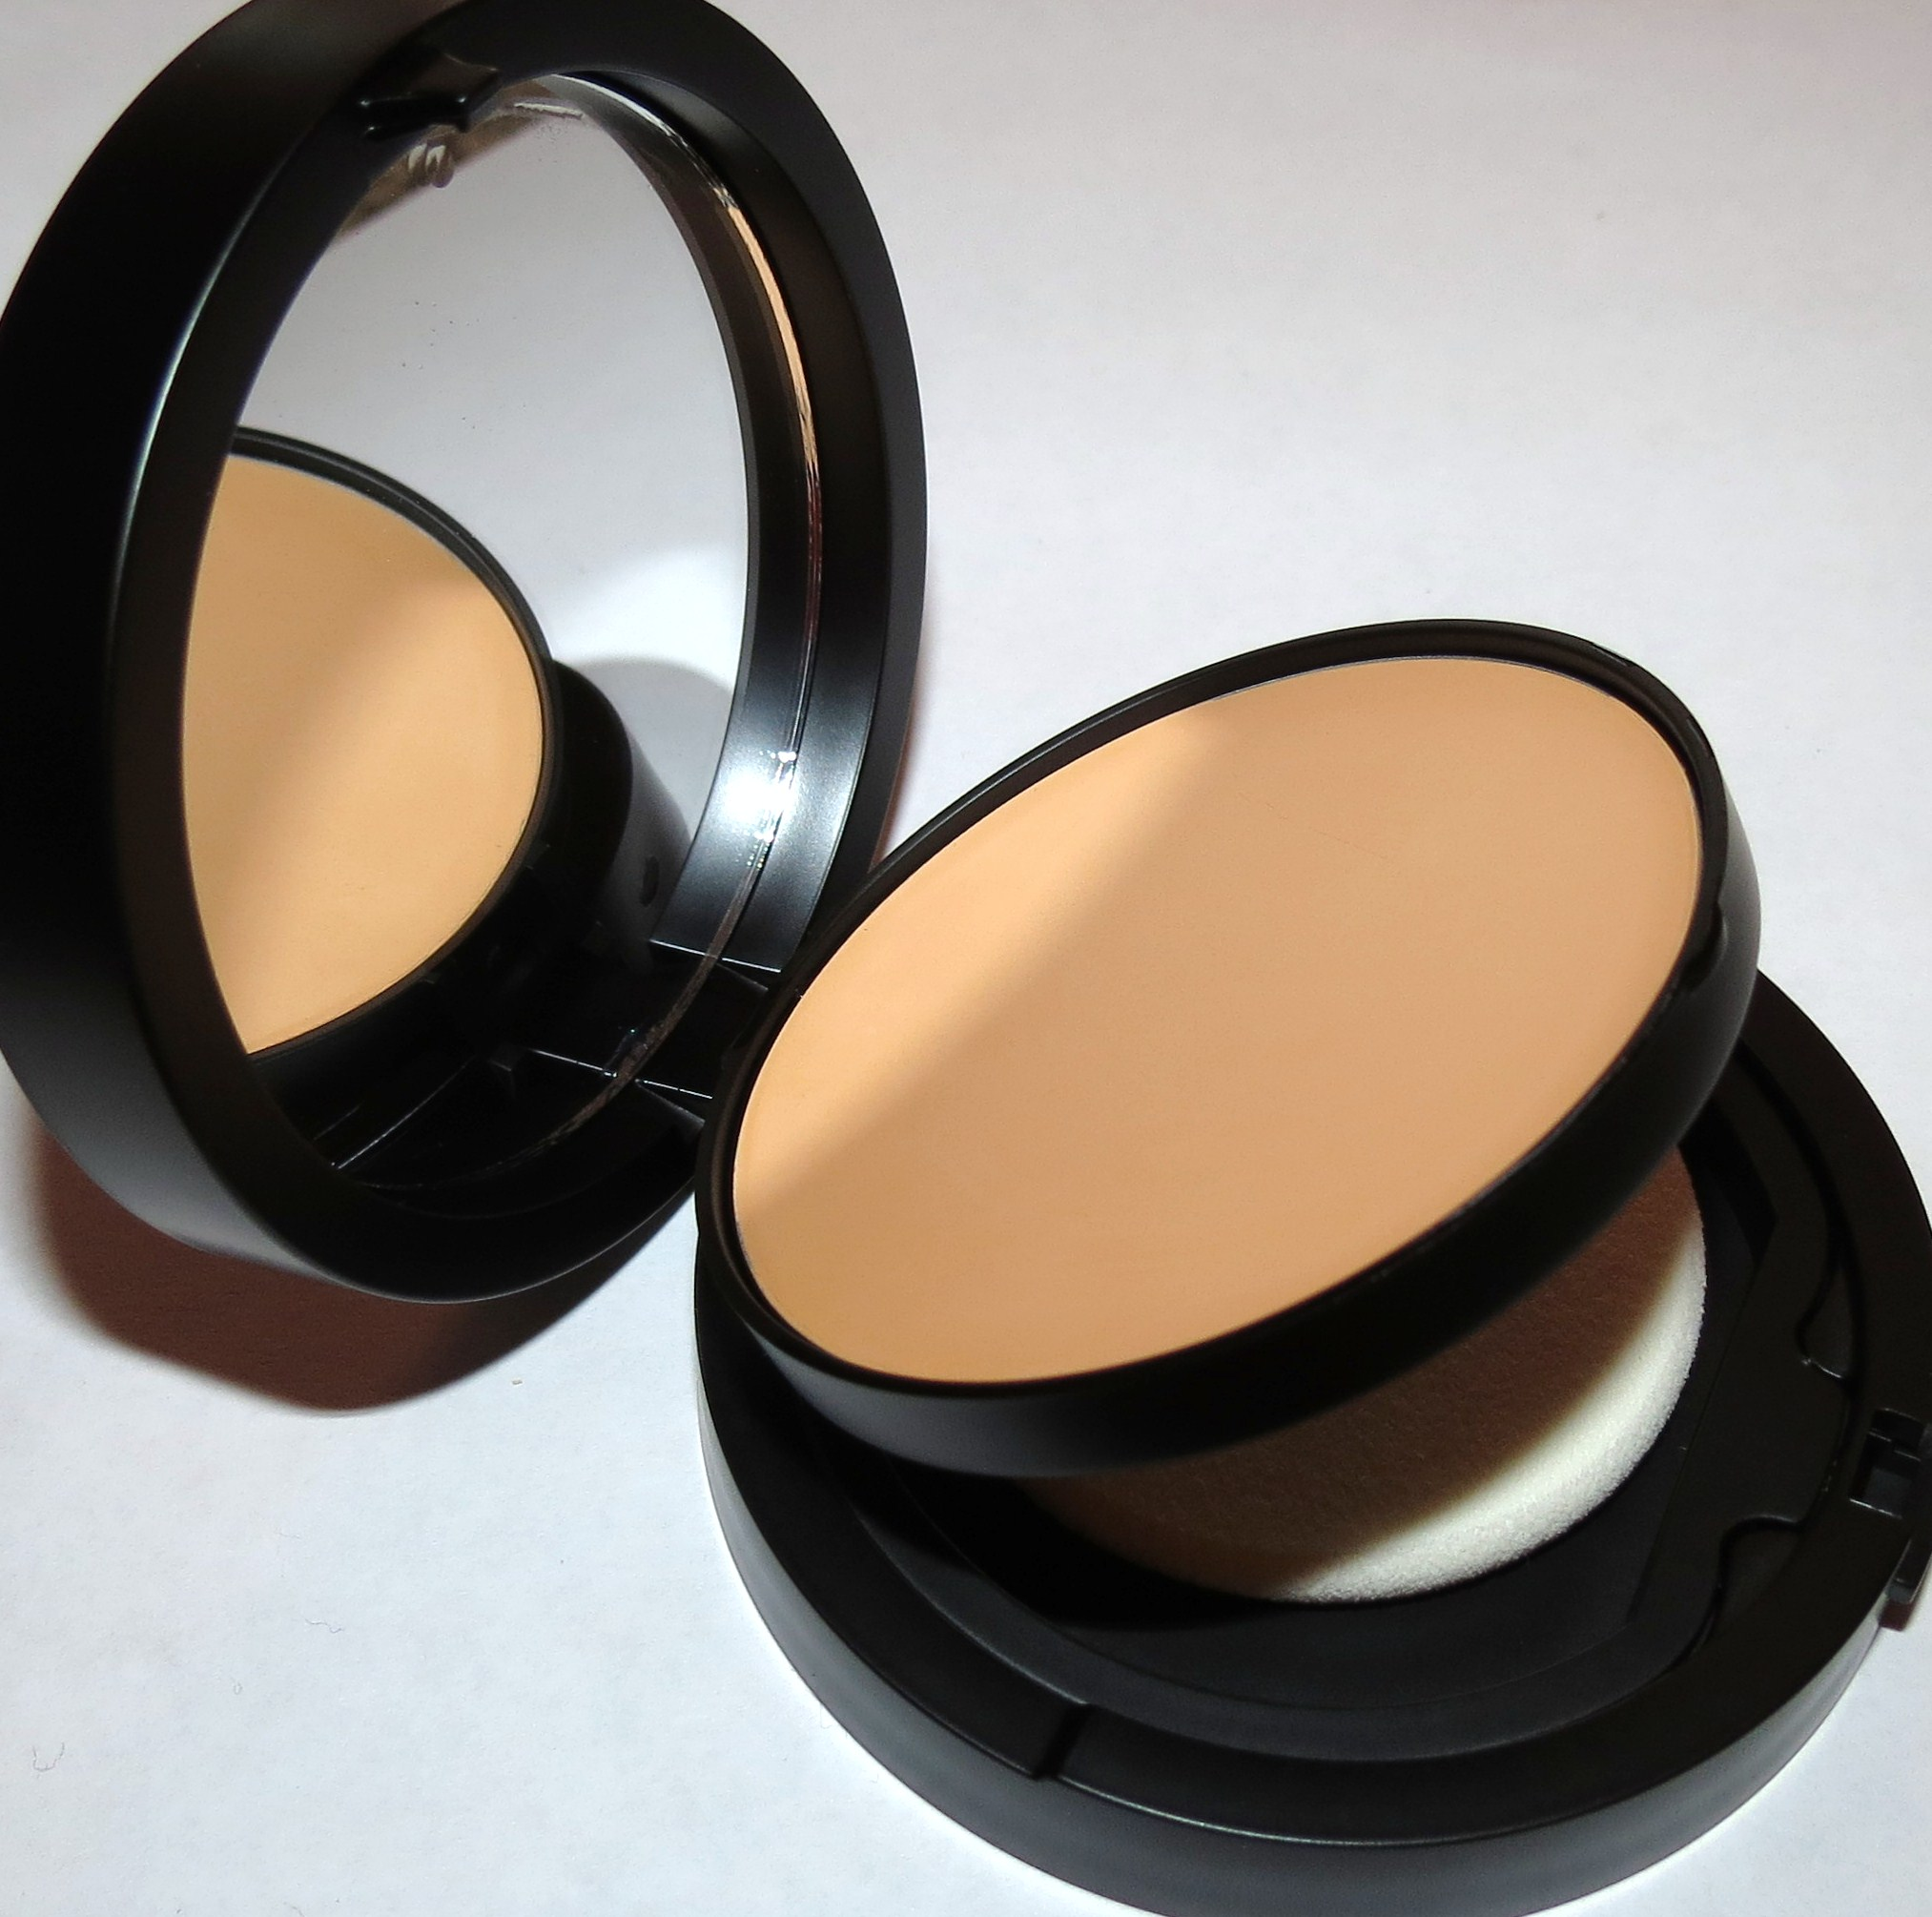 Youngblood HONEY Mineral Radiance Crème Powder Foundation Swatches & Review - Blushing Noir